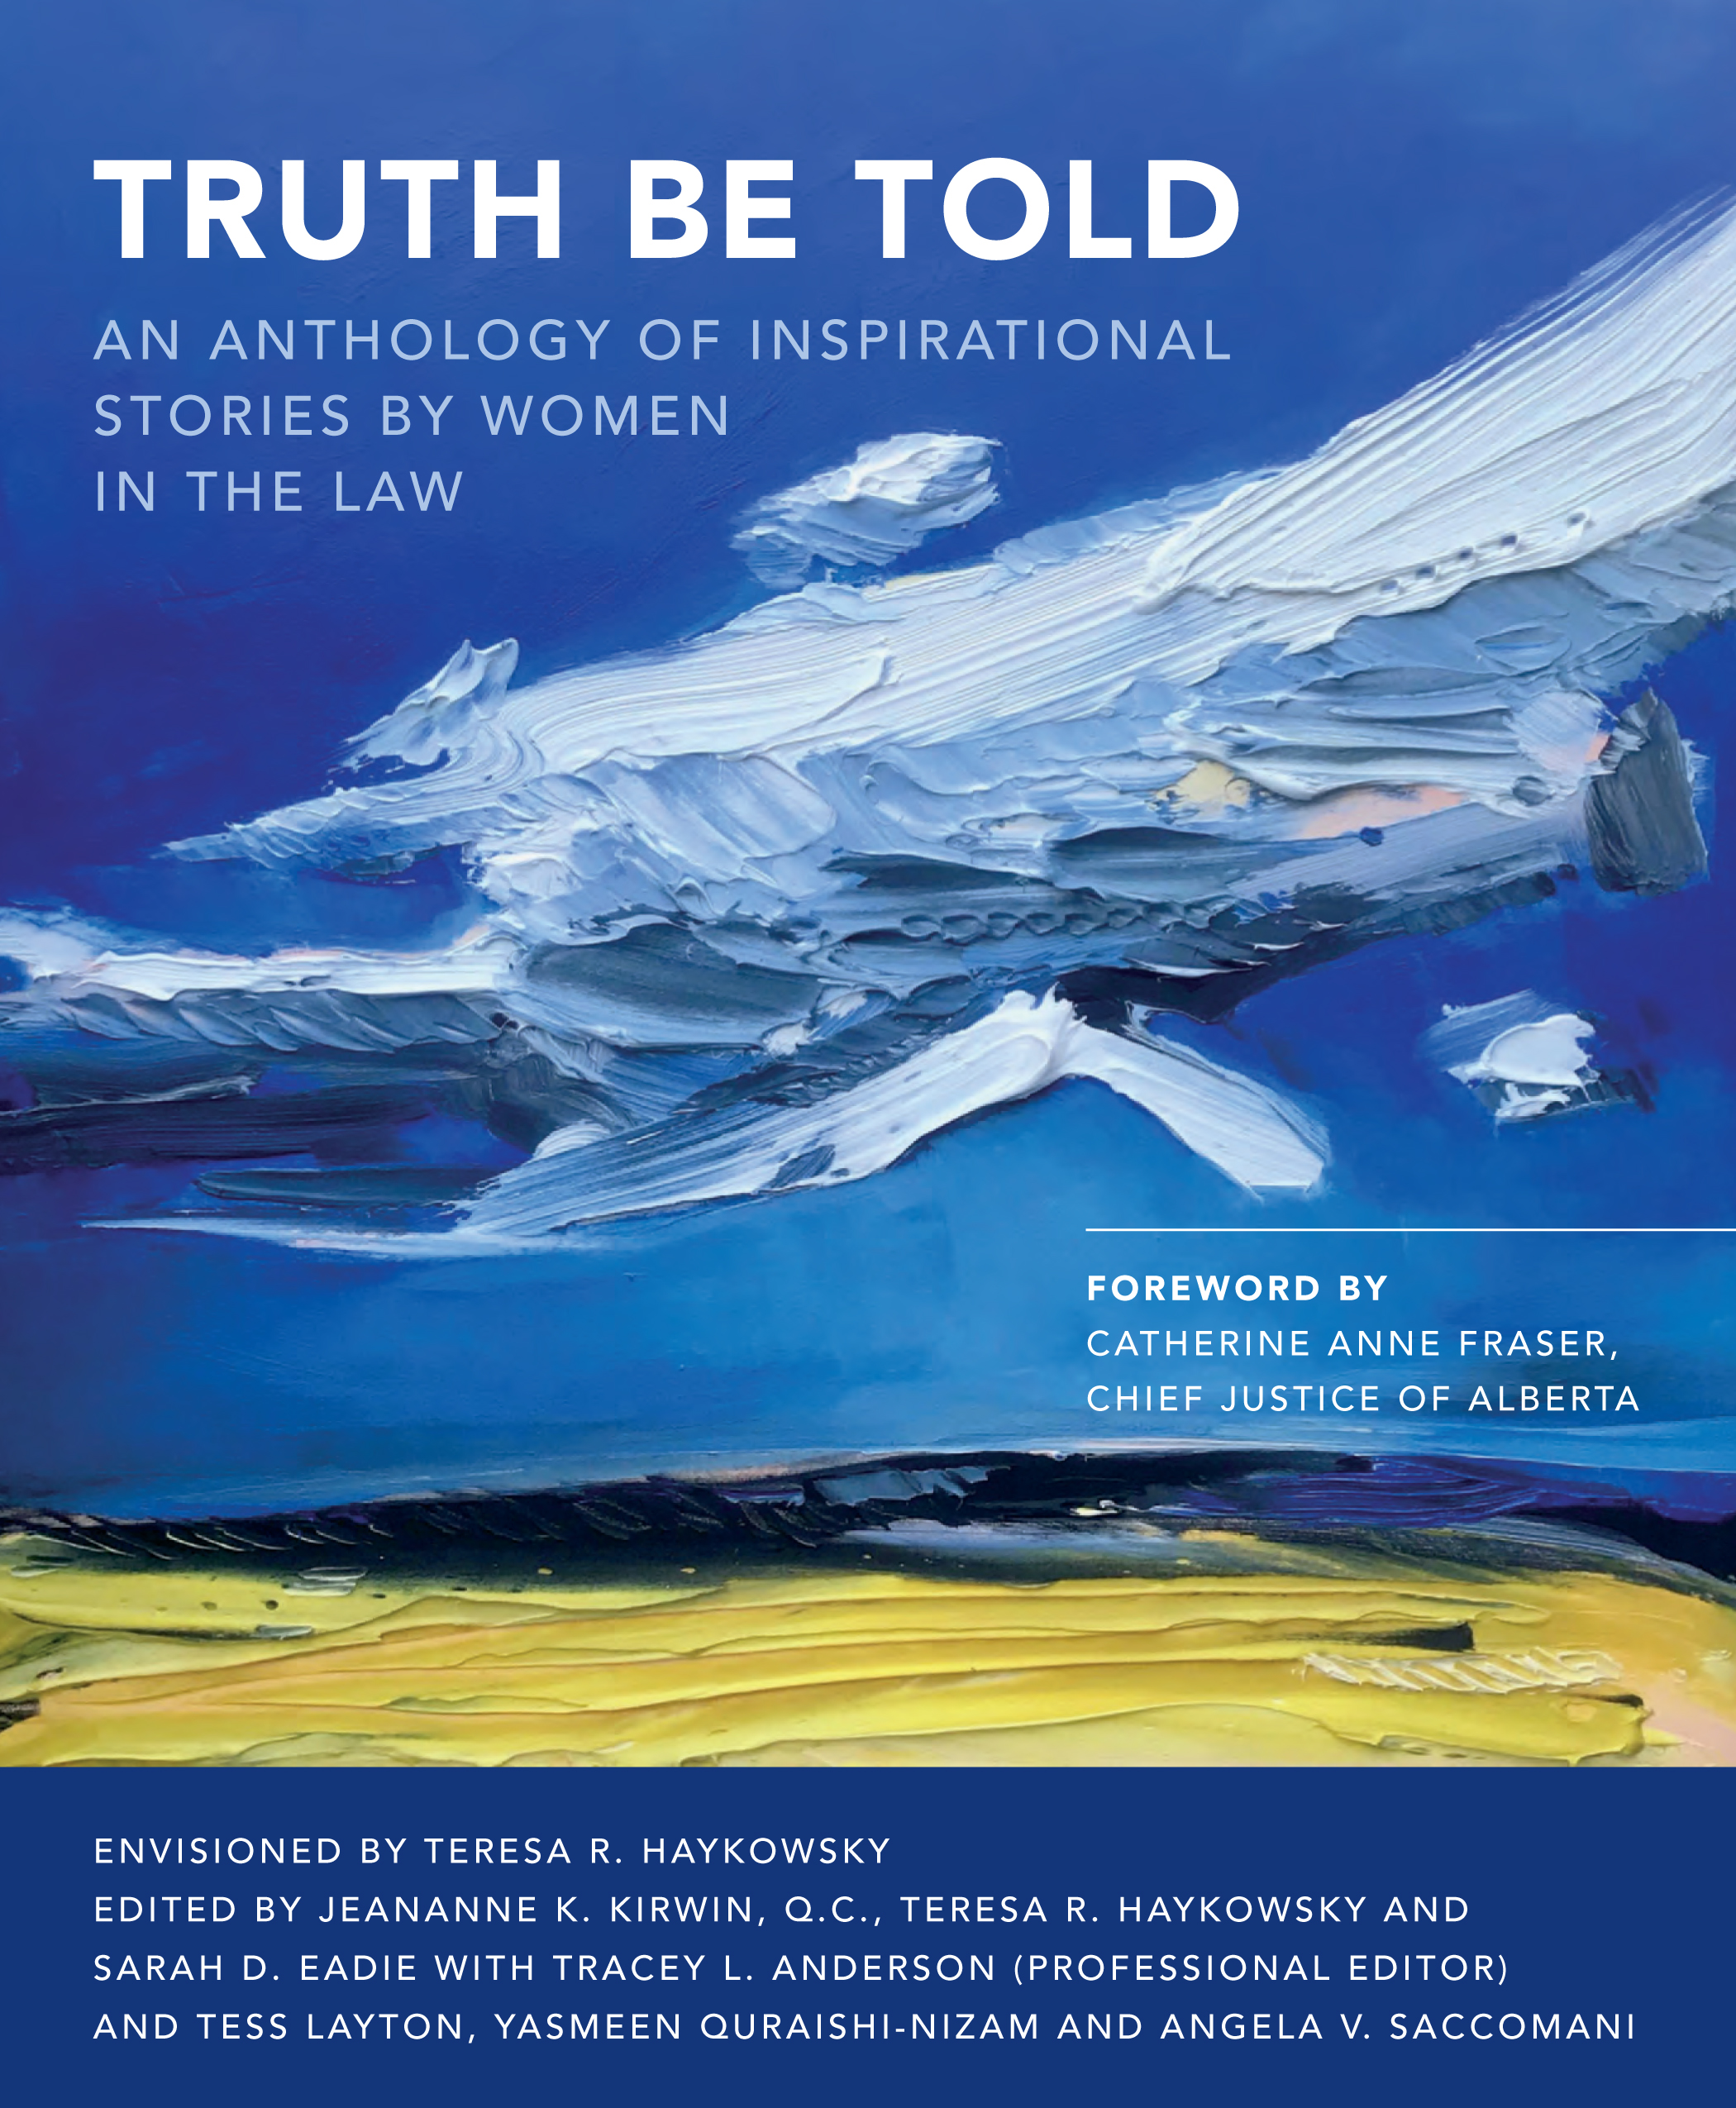 Truth Be Told: An Anthology of Inspirational Stories by Women in the Law